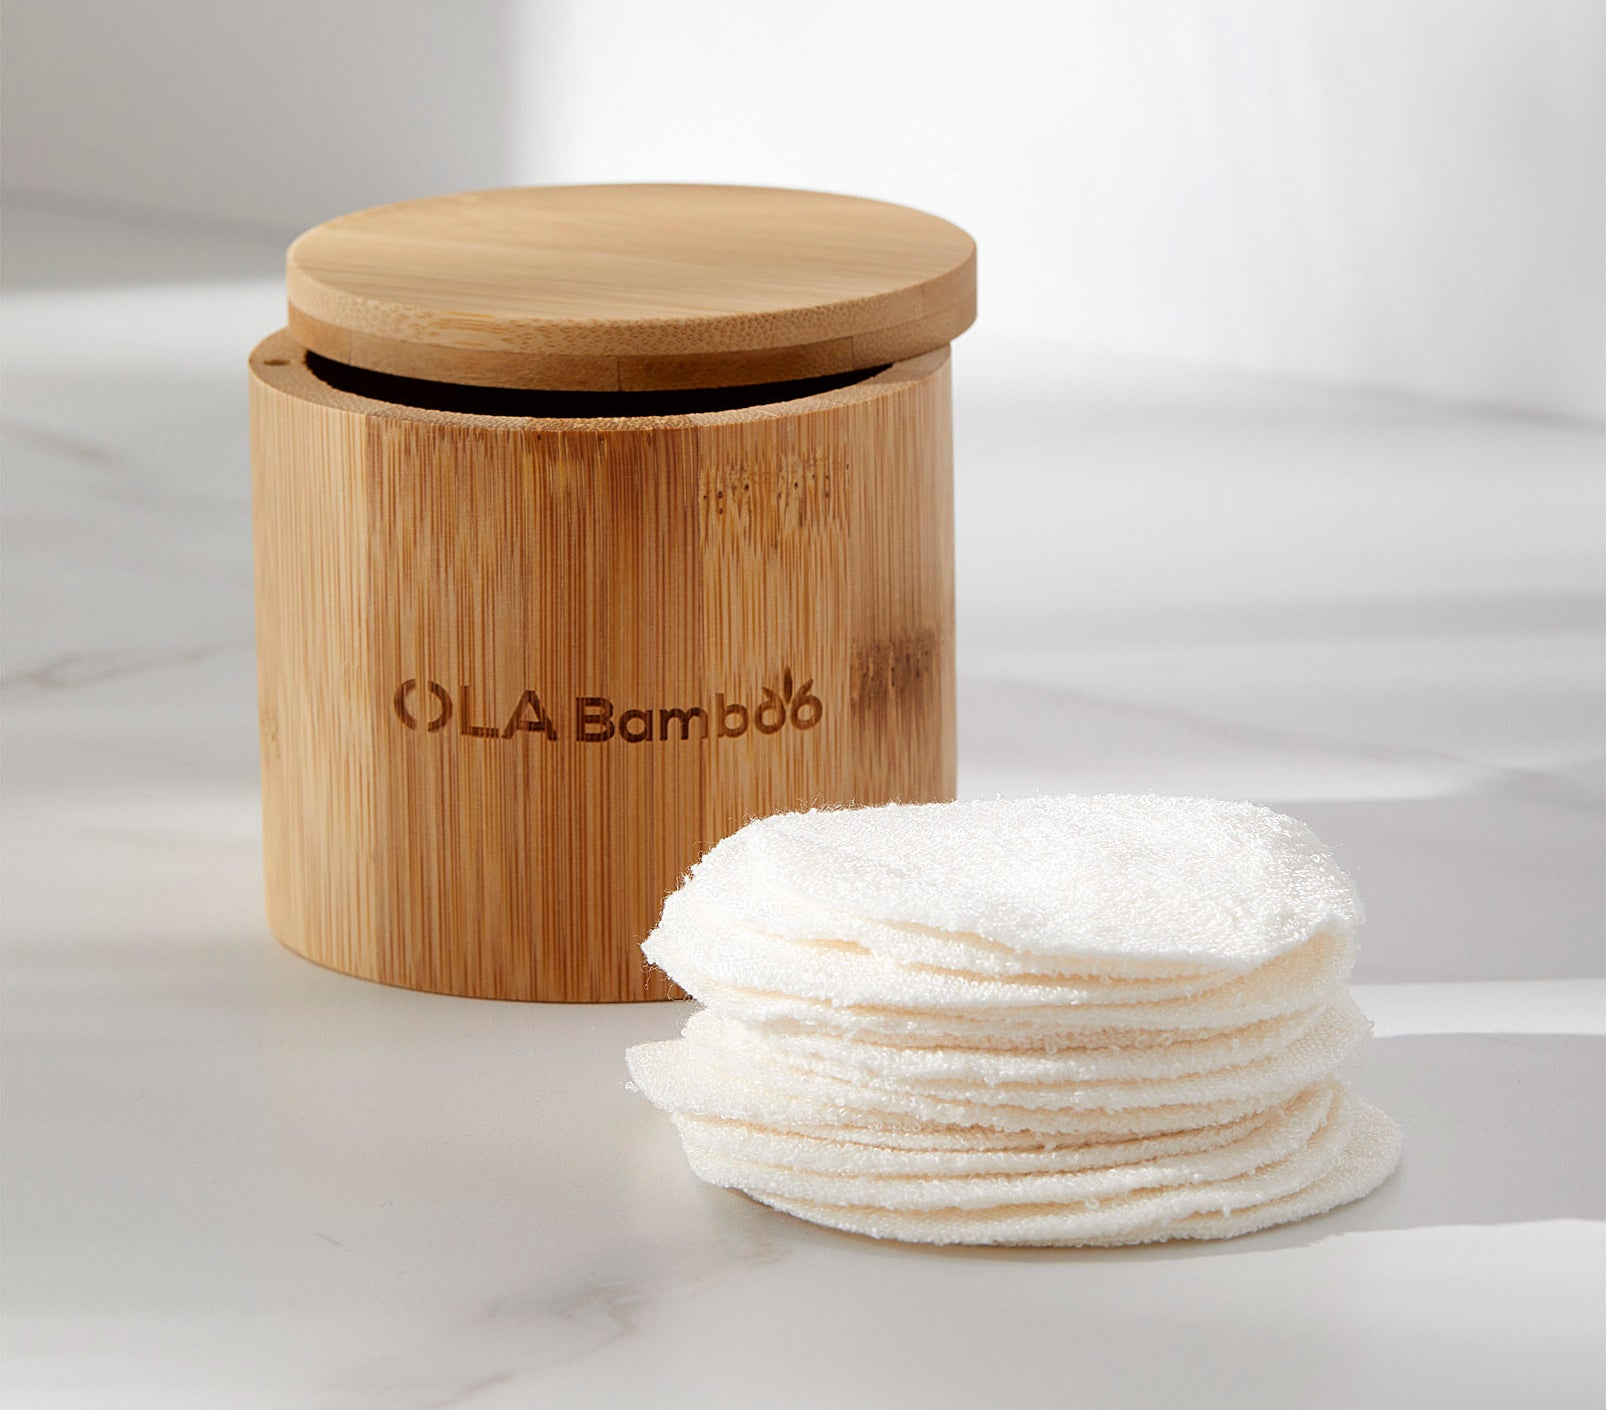 A stack of reusable beauty pads next to the cylinder bamboo container